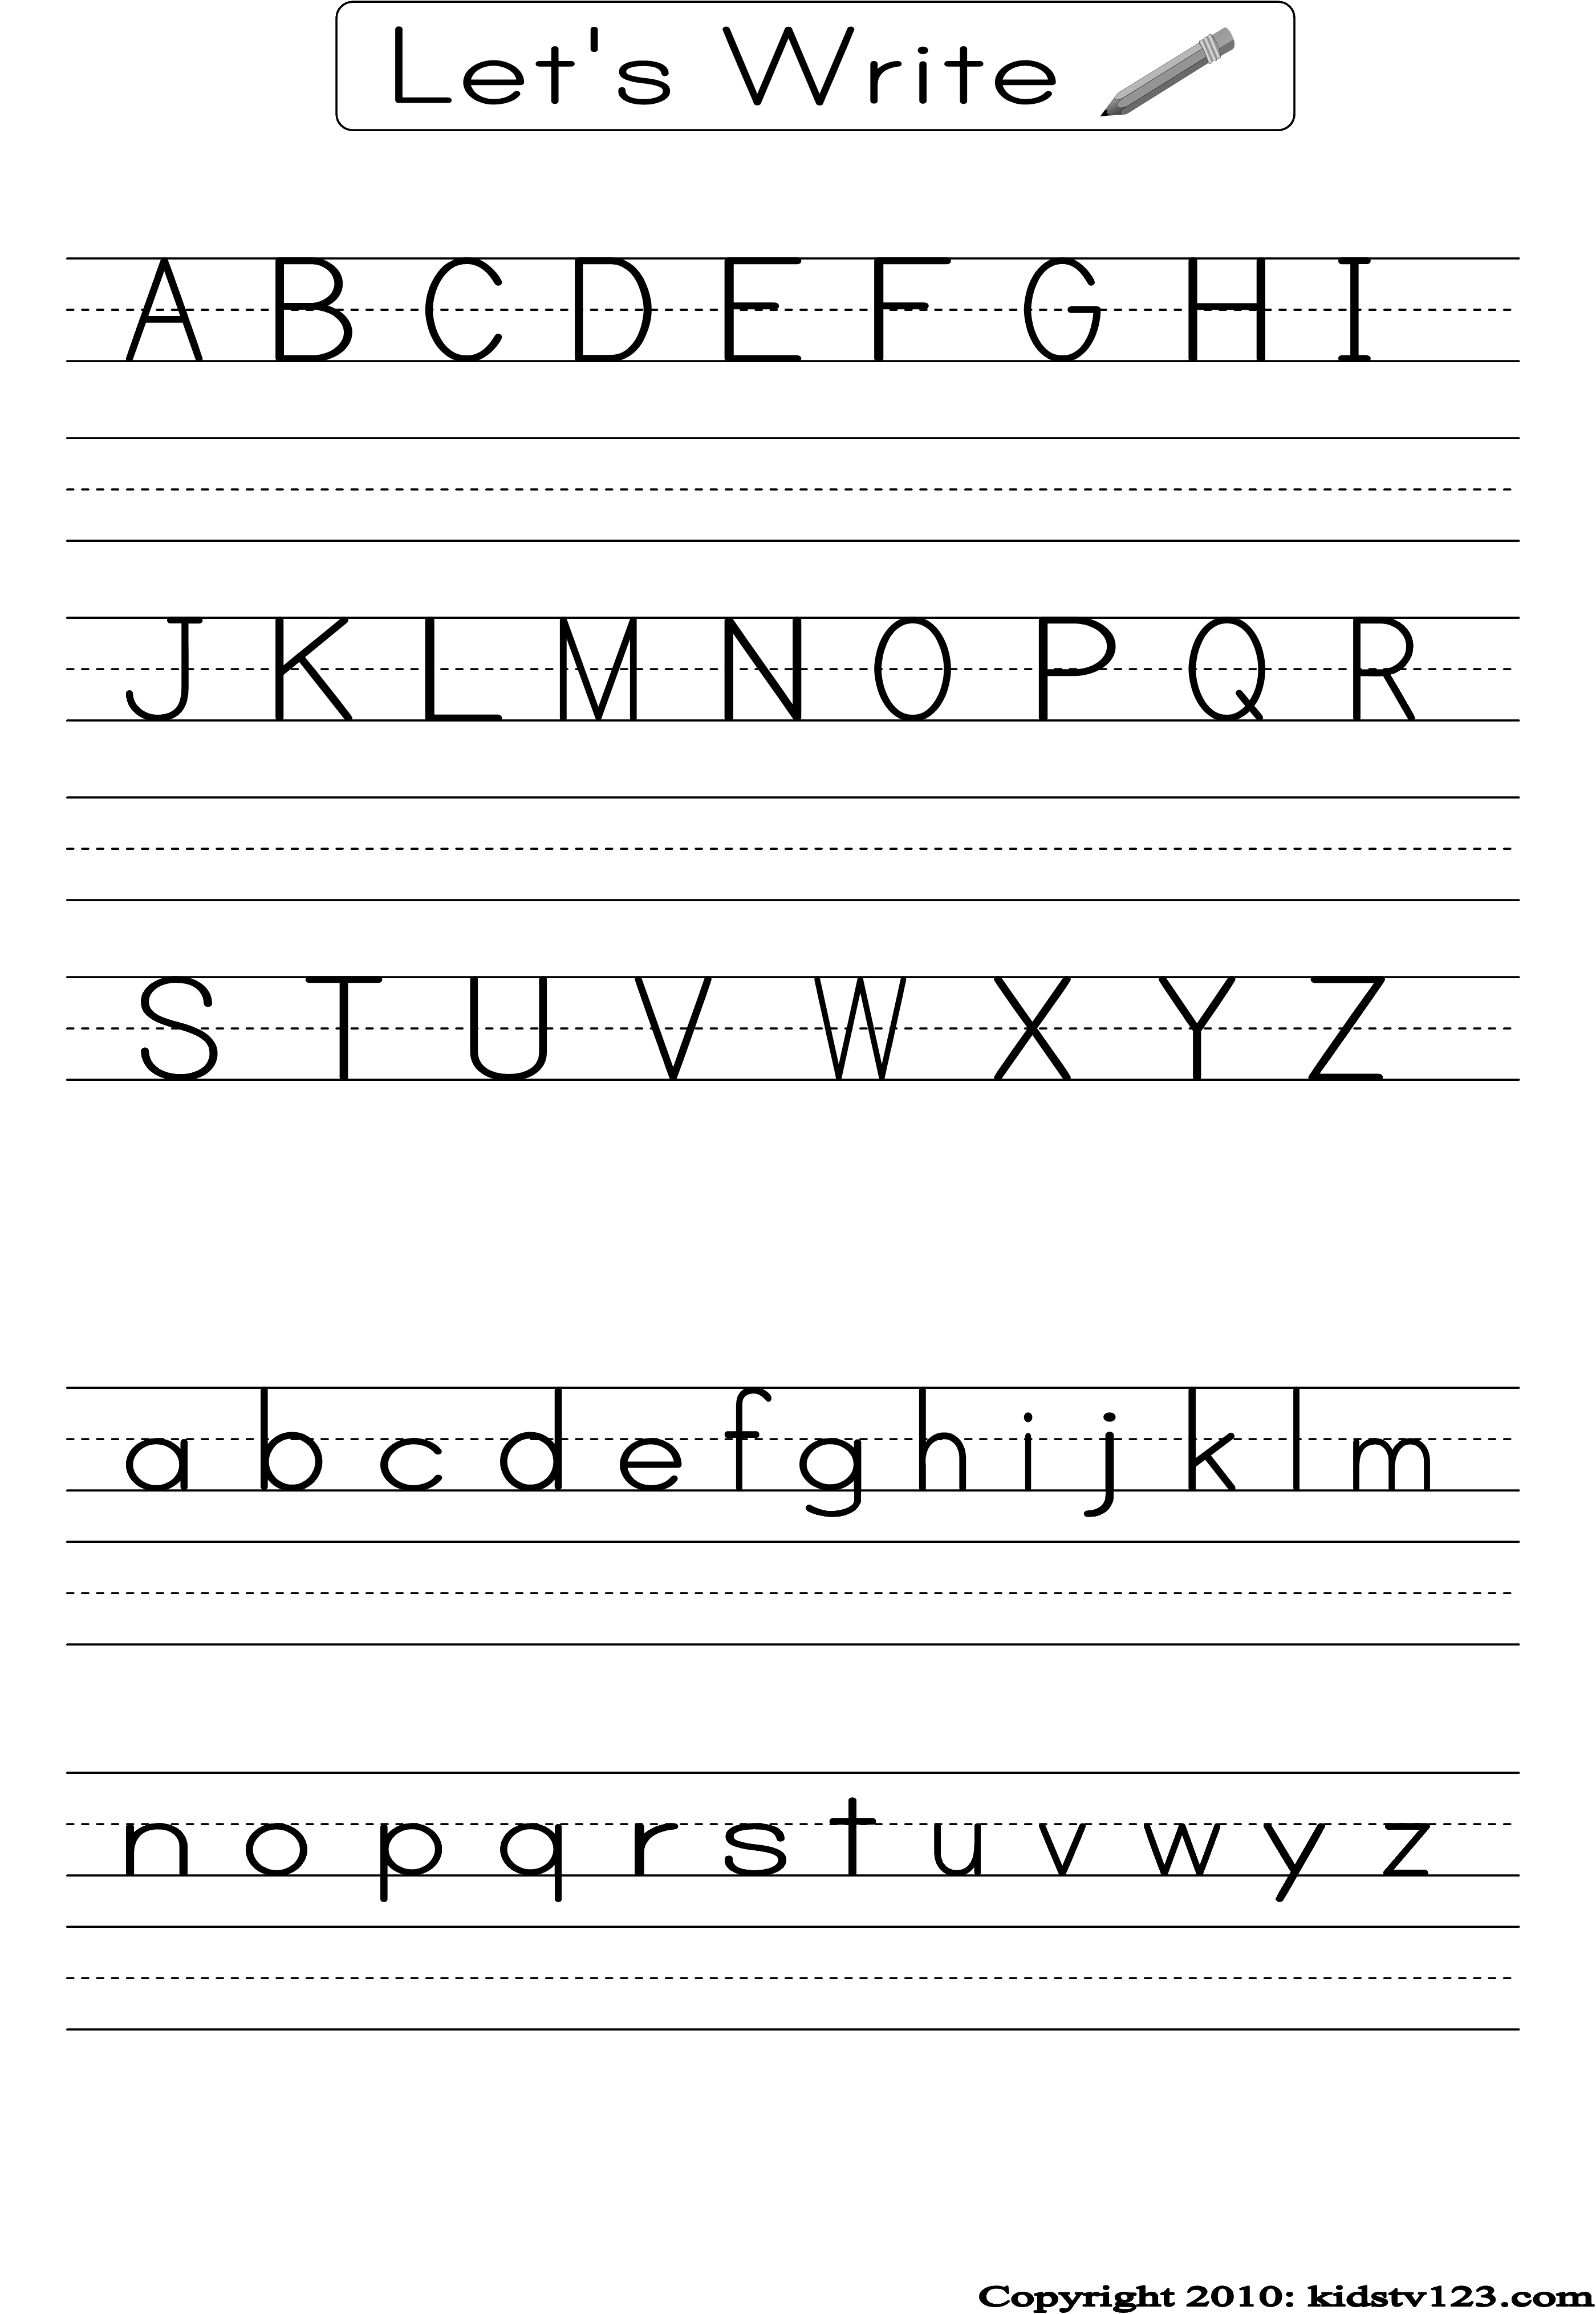 Alphabet Handwriting Worksheet Sharebrowse – Free Handwriting Worksheets